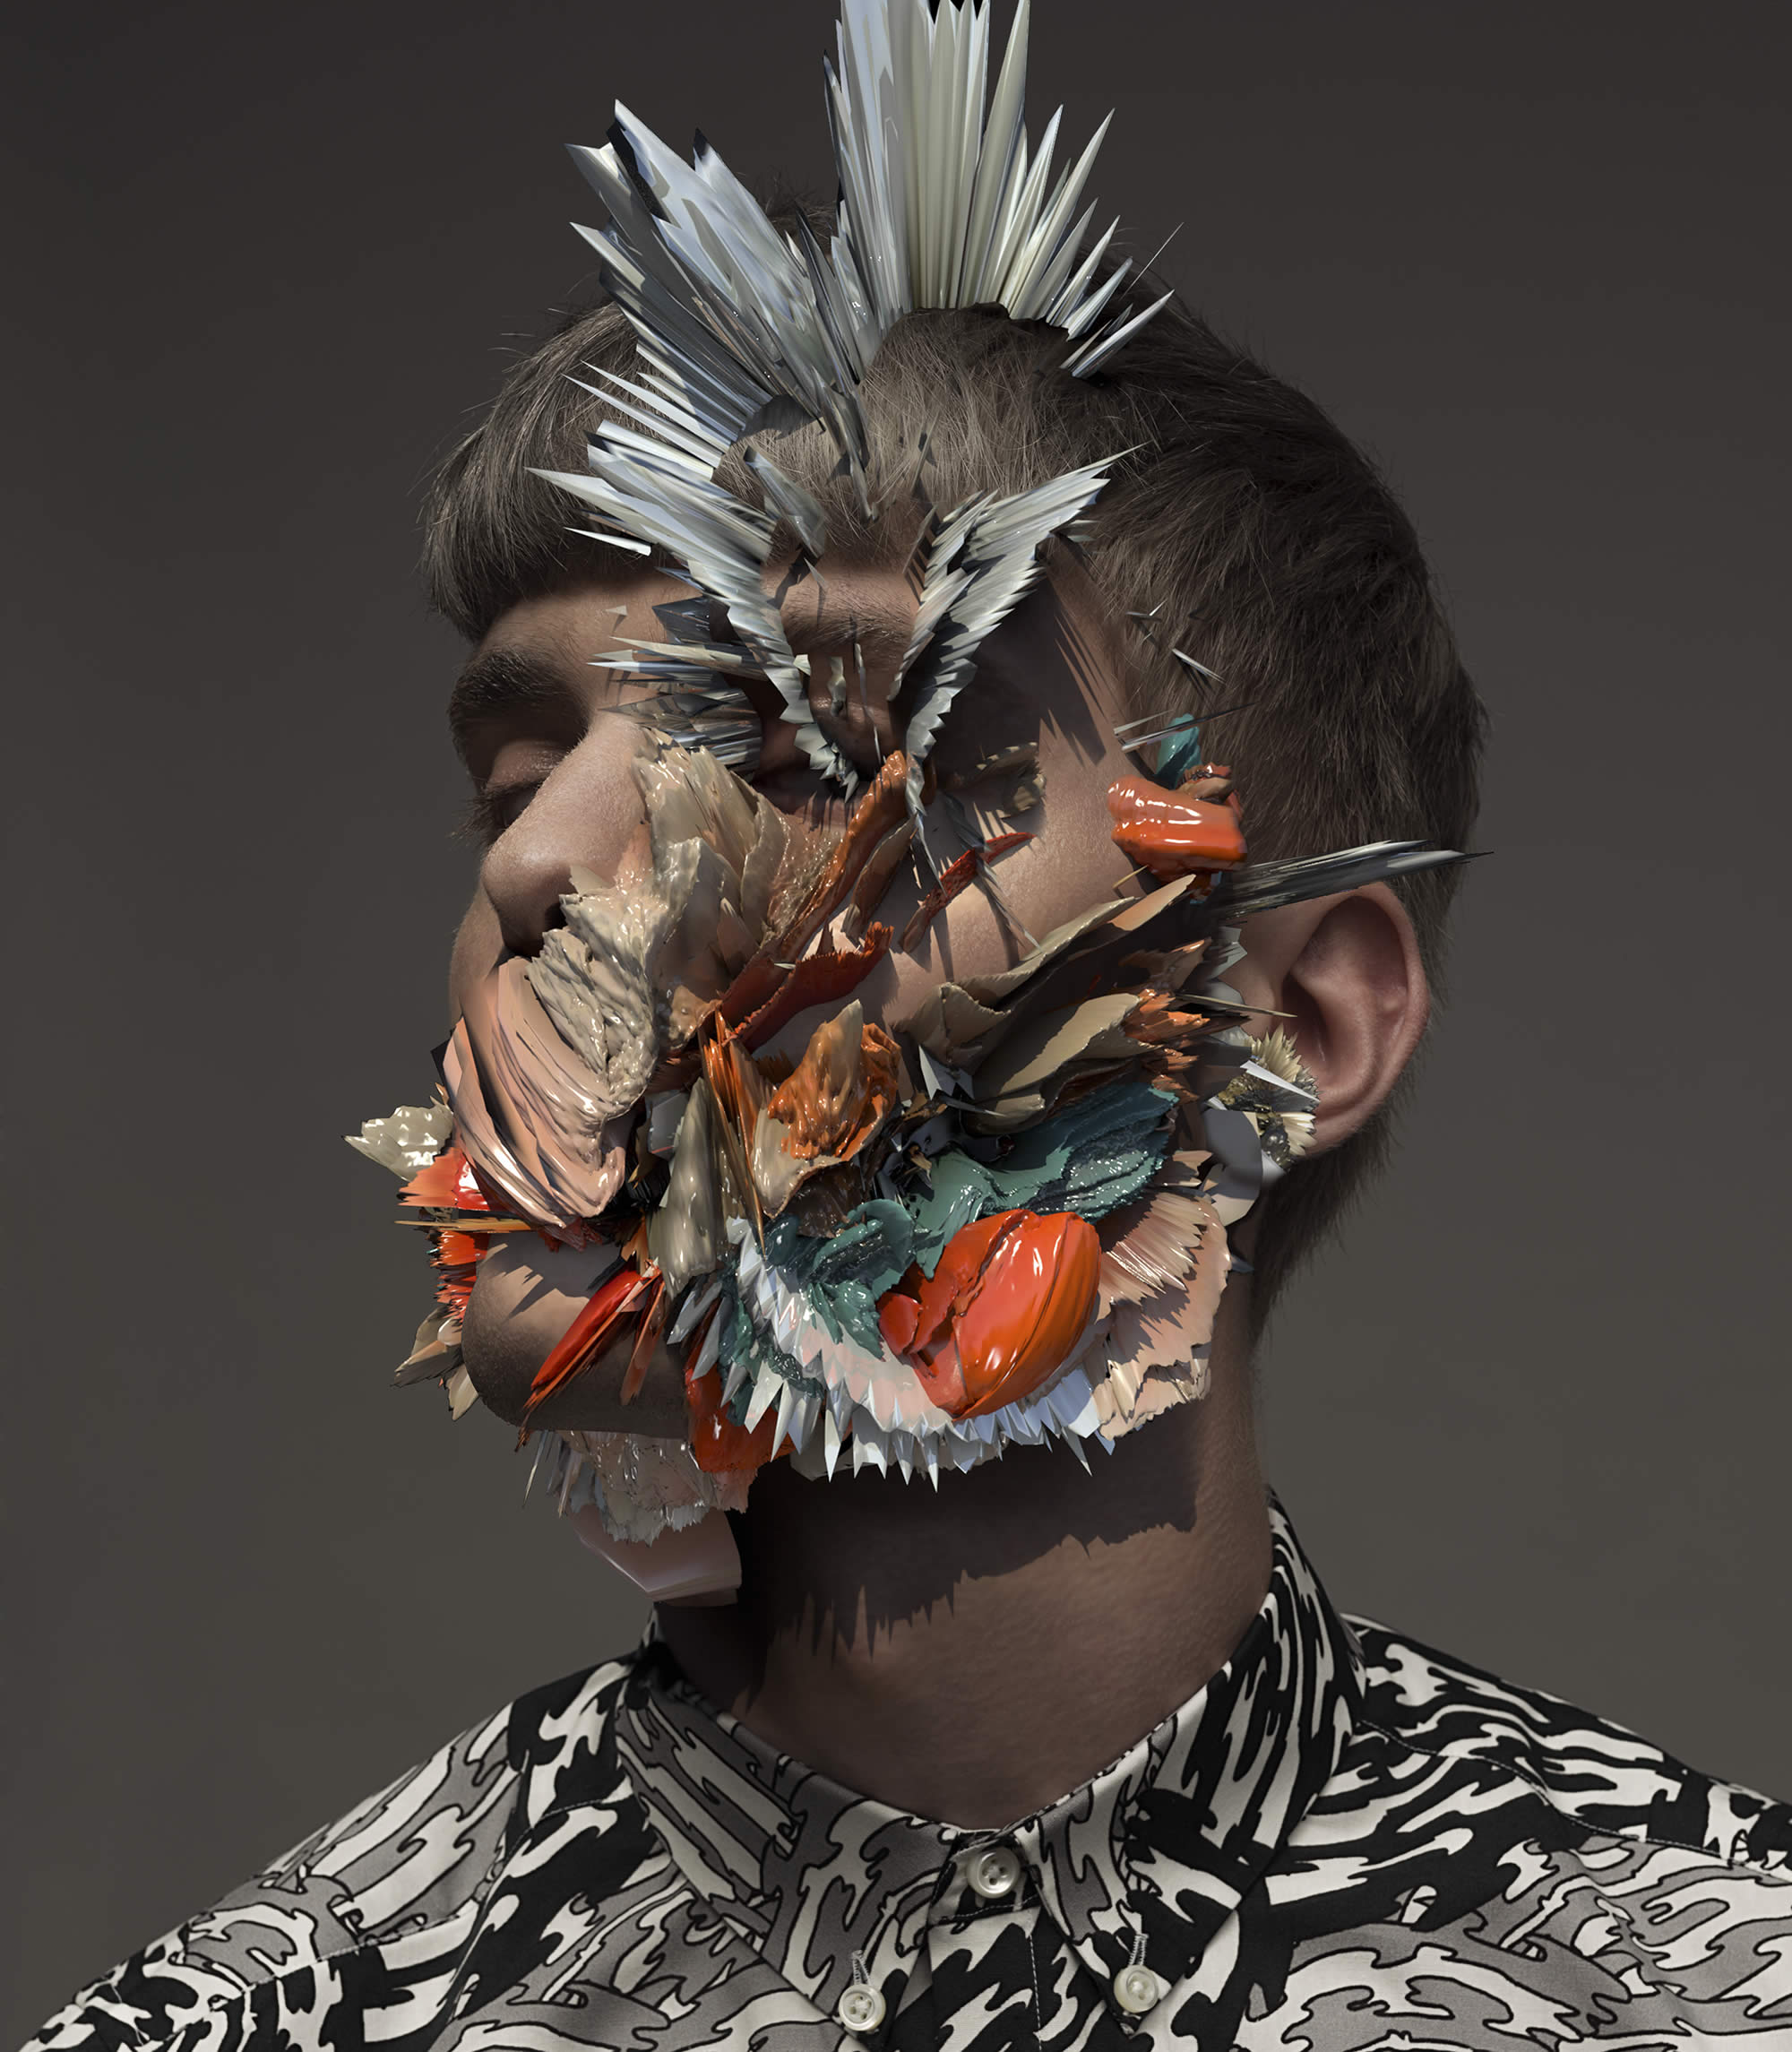 Exploding Faces & Glitchy Portraits: The Futuristic Work of Pandagunda